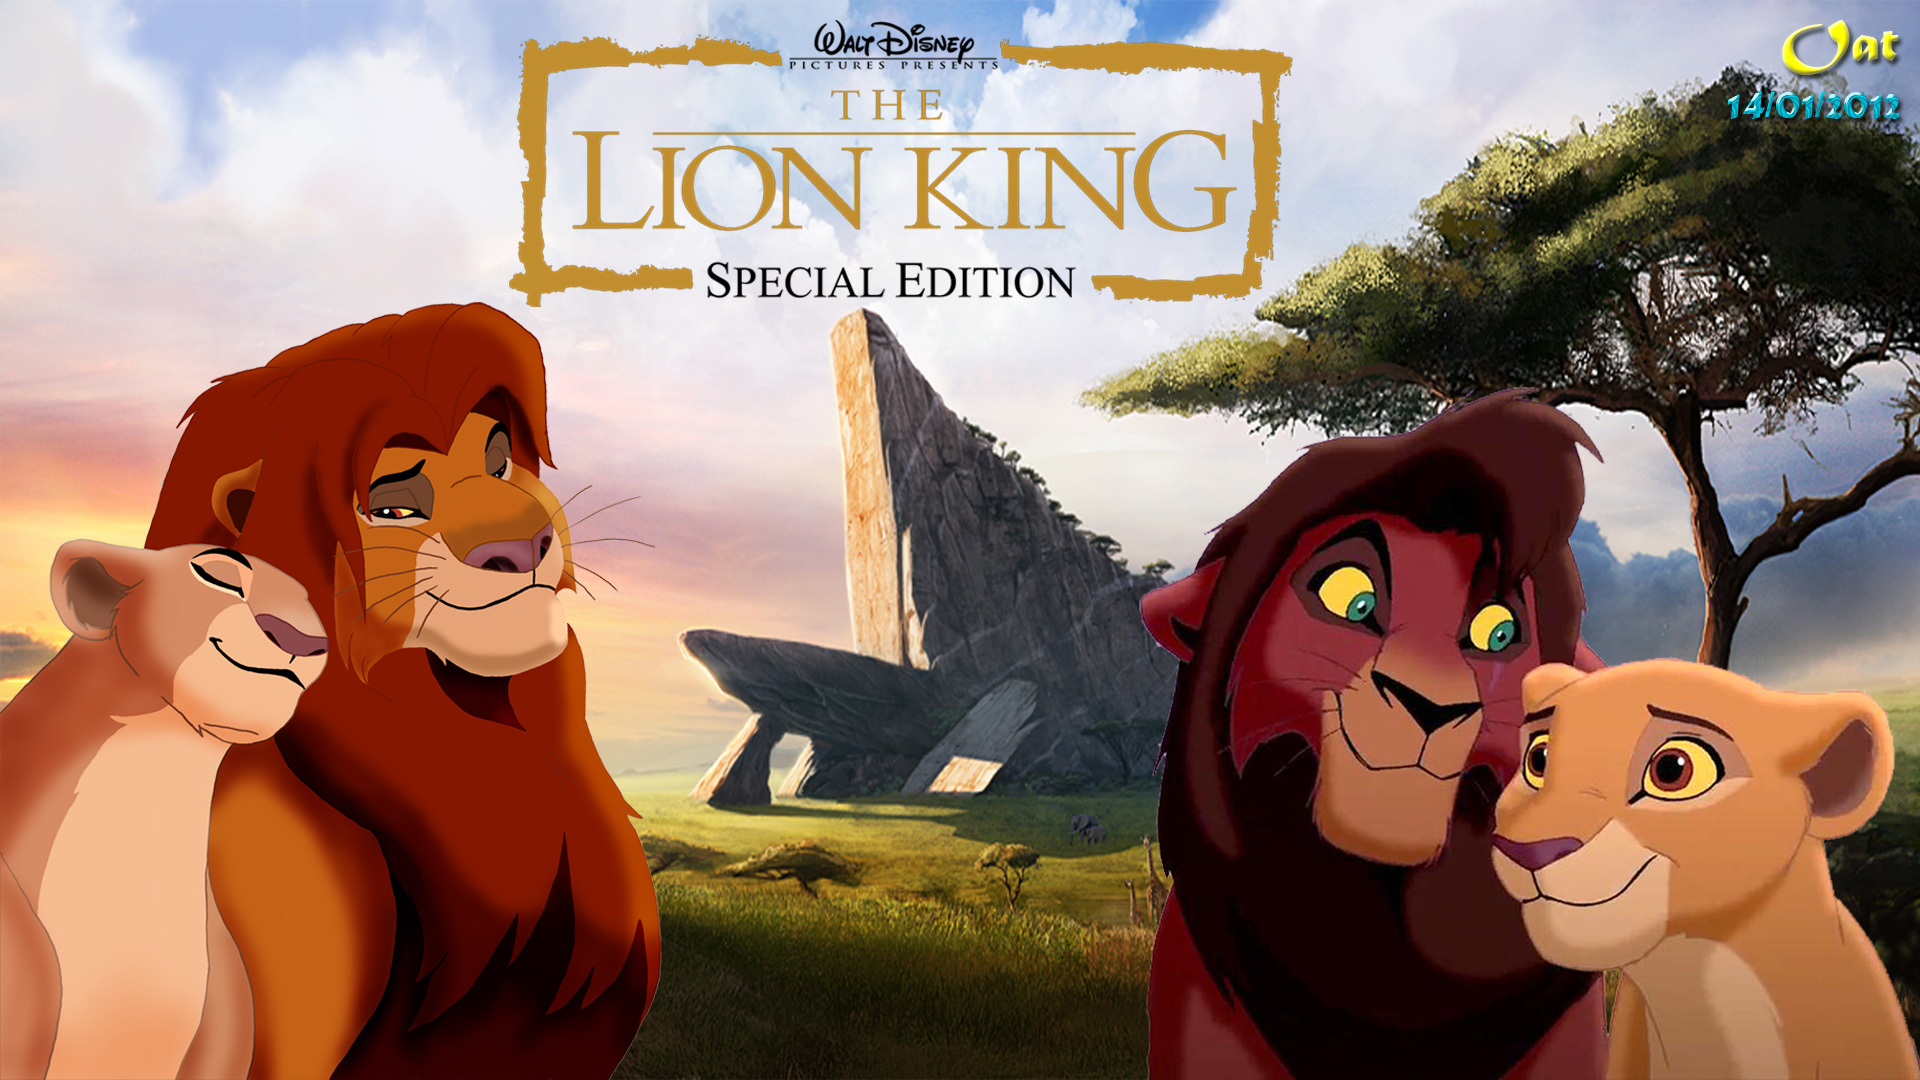 Rainsoul Images The Lion King Hd Wallpaper And Background Photos